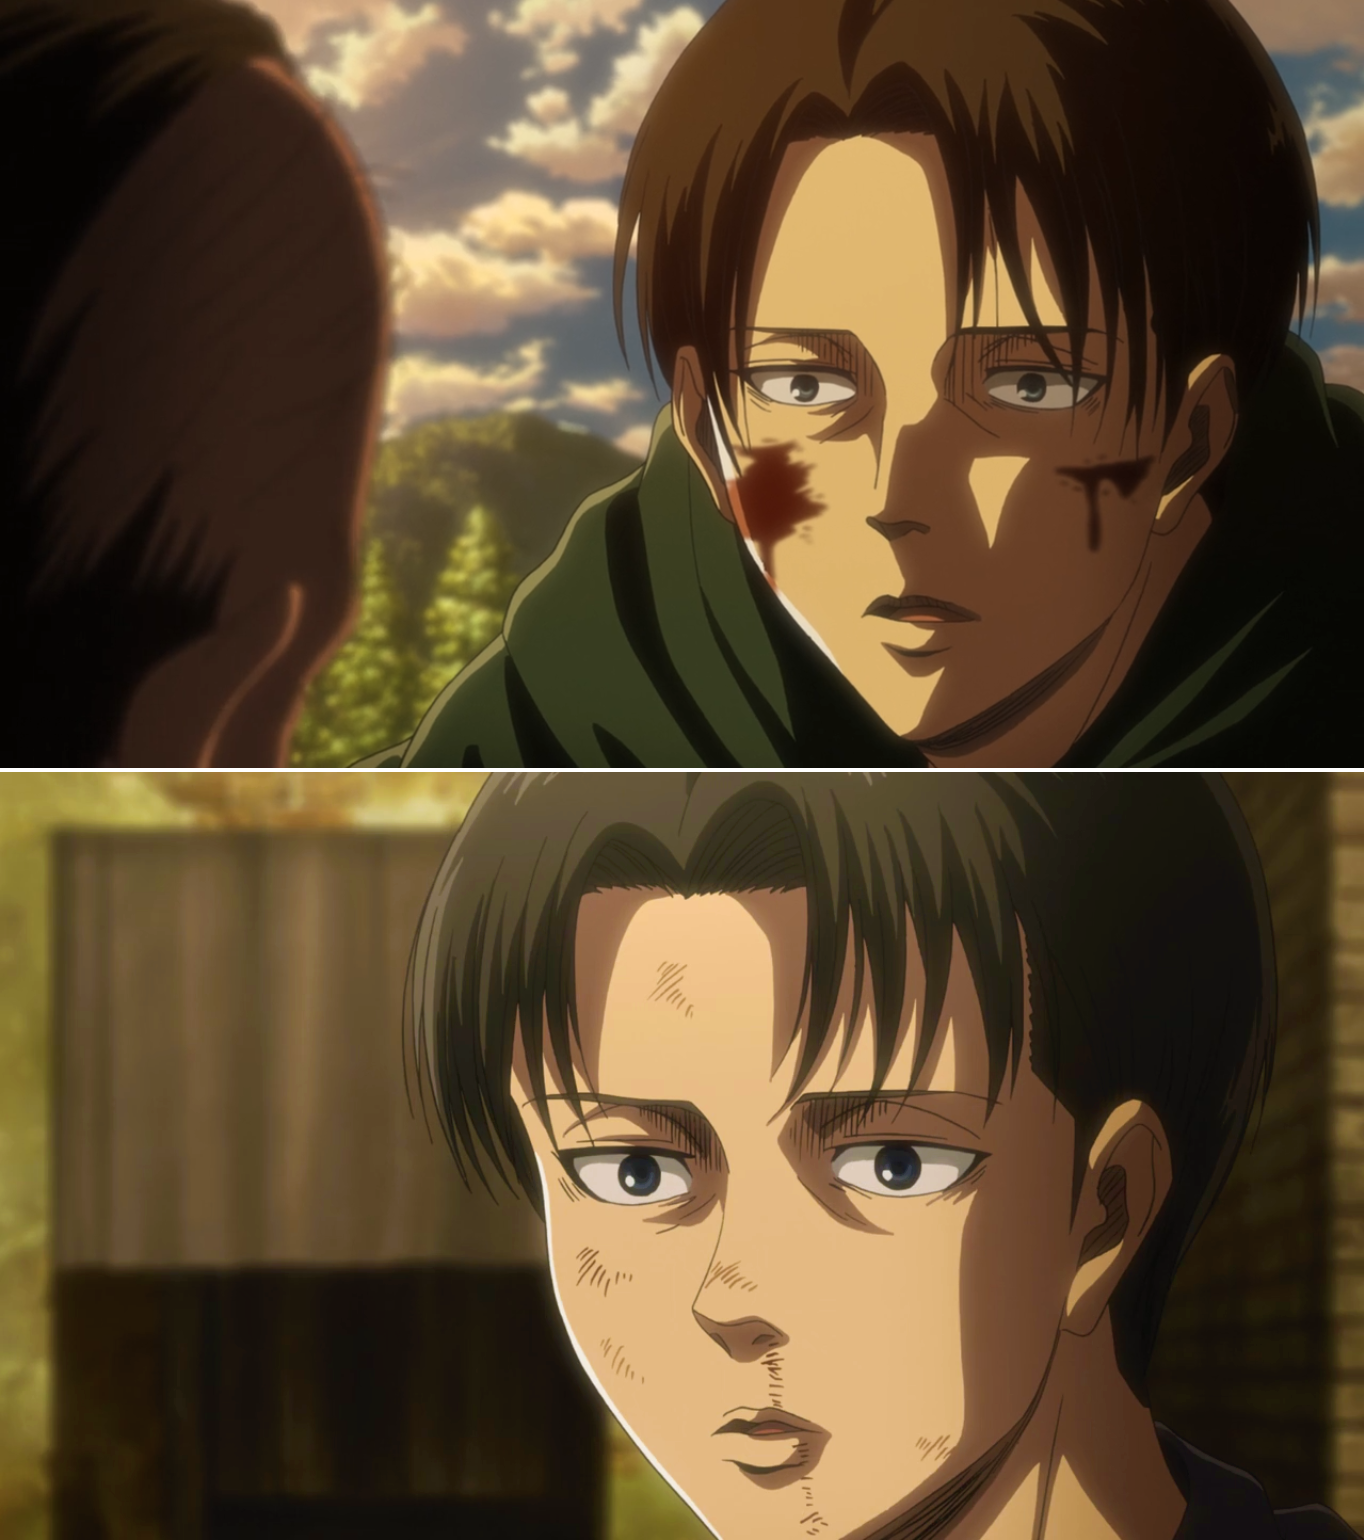 Pin By Sydney Galloway On Attack On Titan (Spoilers Ahead